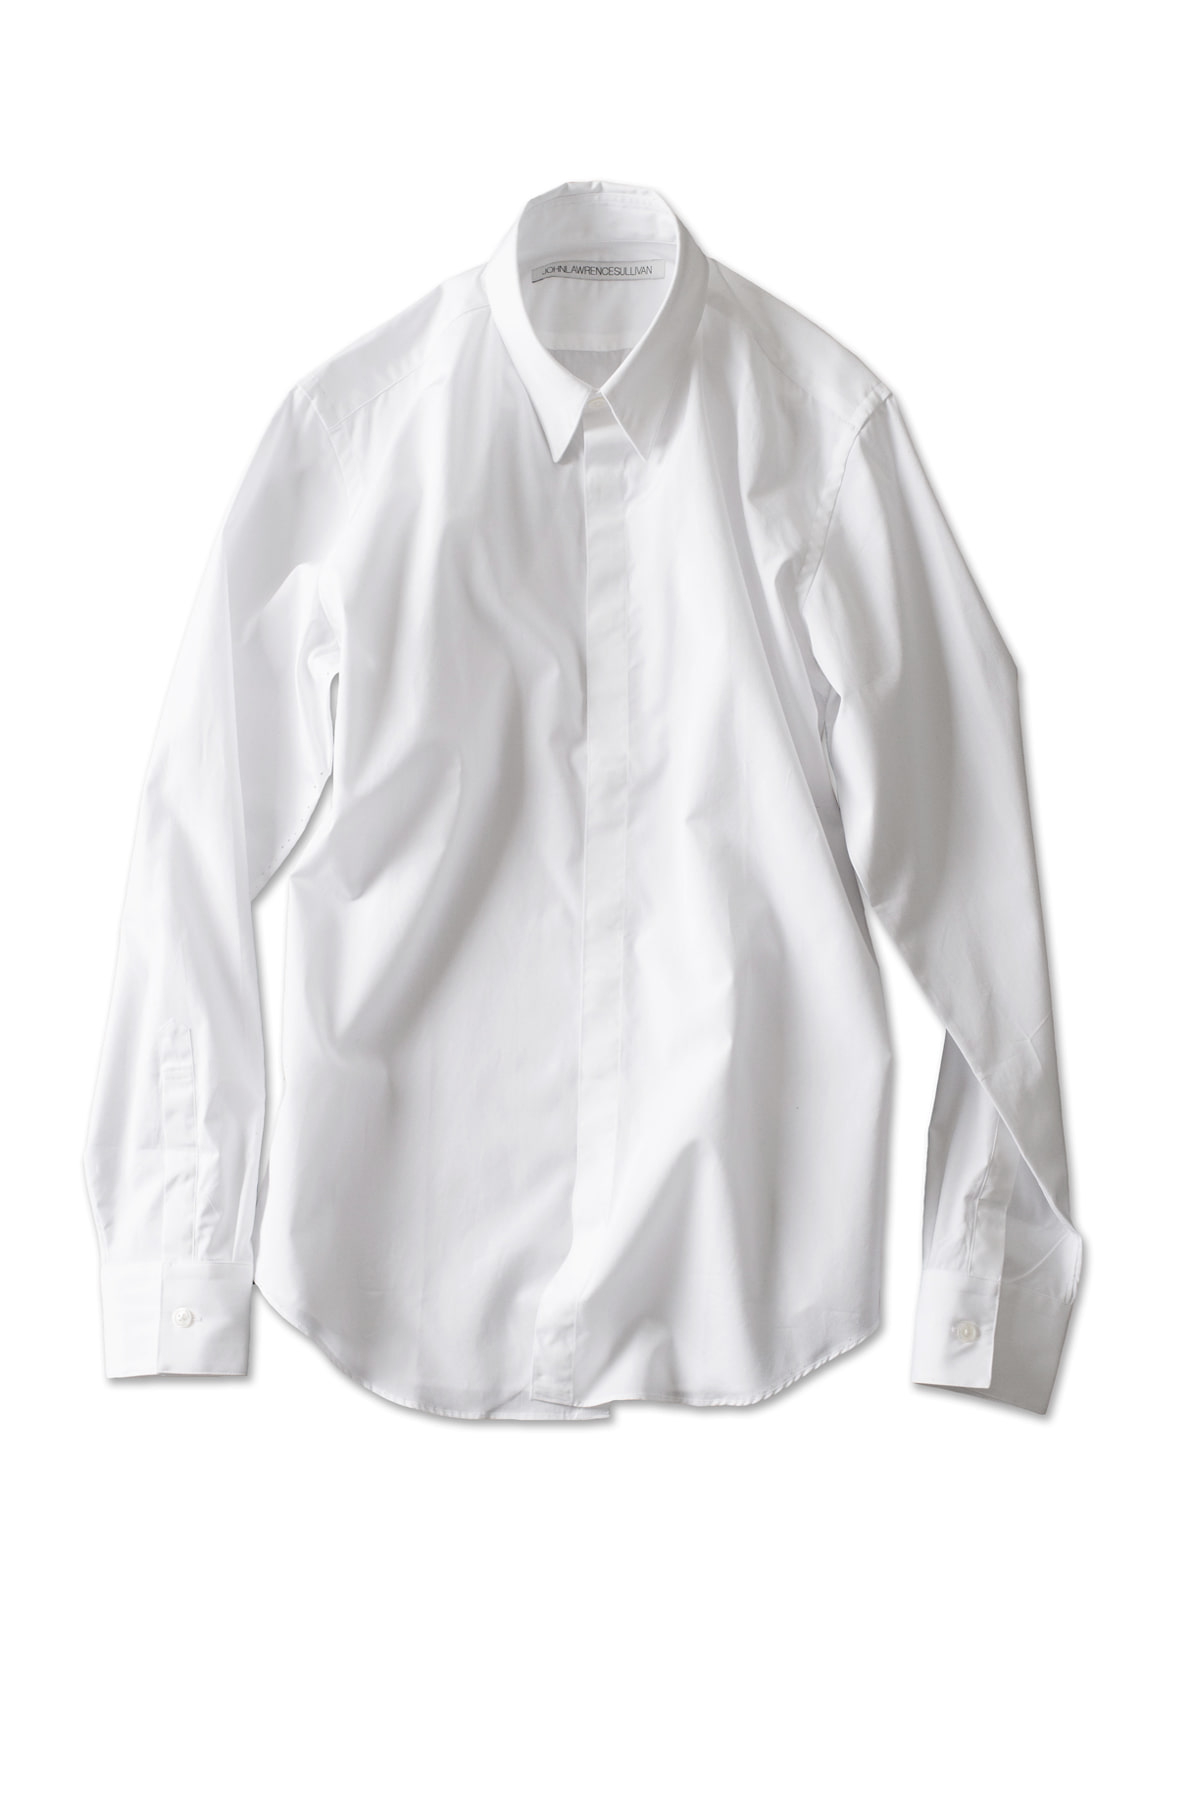 JOHN LAWRENCE SULLIVAN : Fly Front Shirt (White)